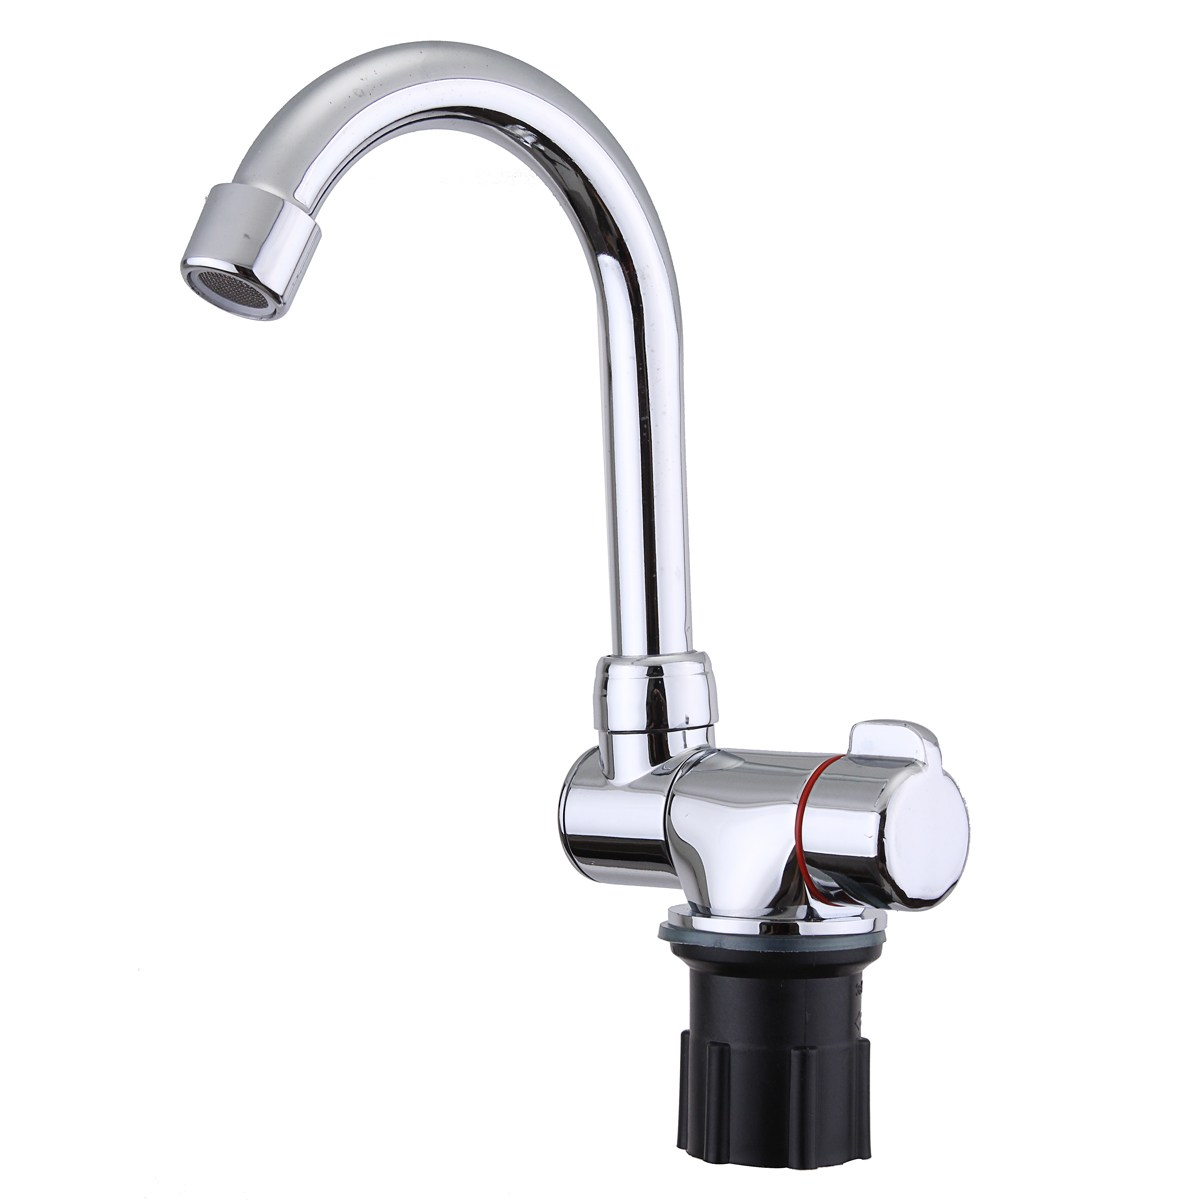 360 Degrees Rotation Faucet Boat Rv Caravan Yacht Turning Folding Kitchen Faucet Tap Bathtub Tap